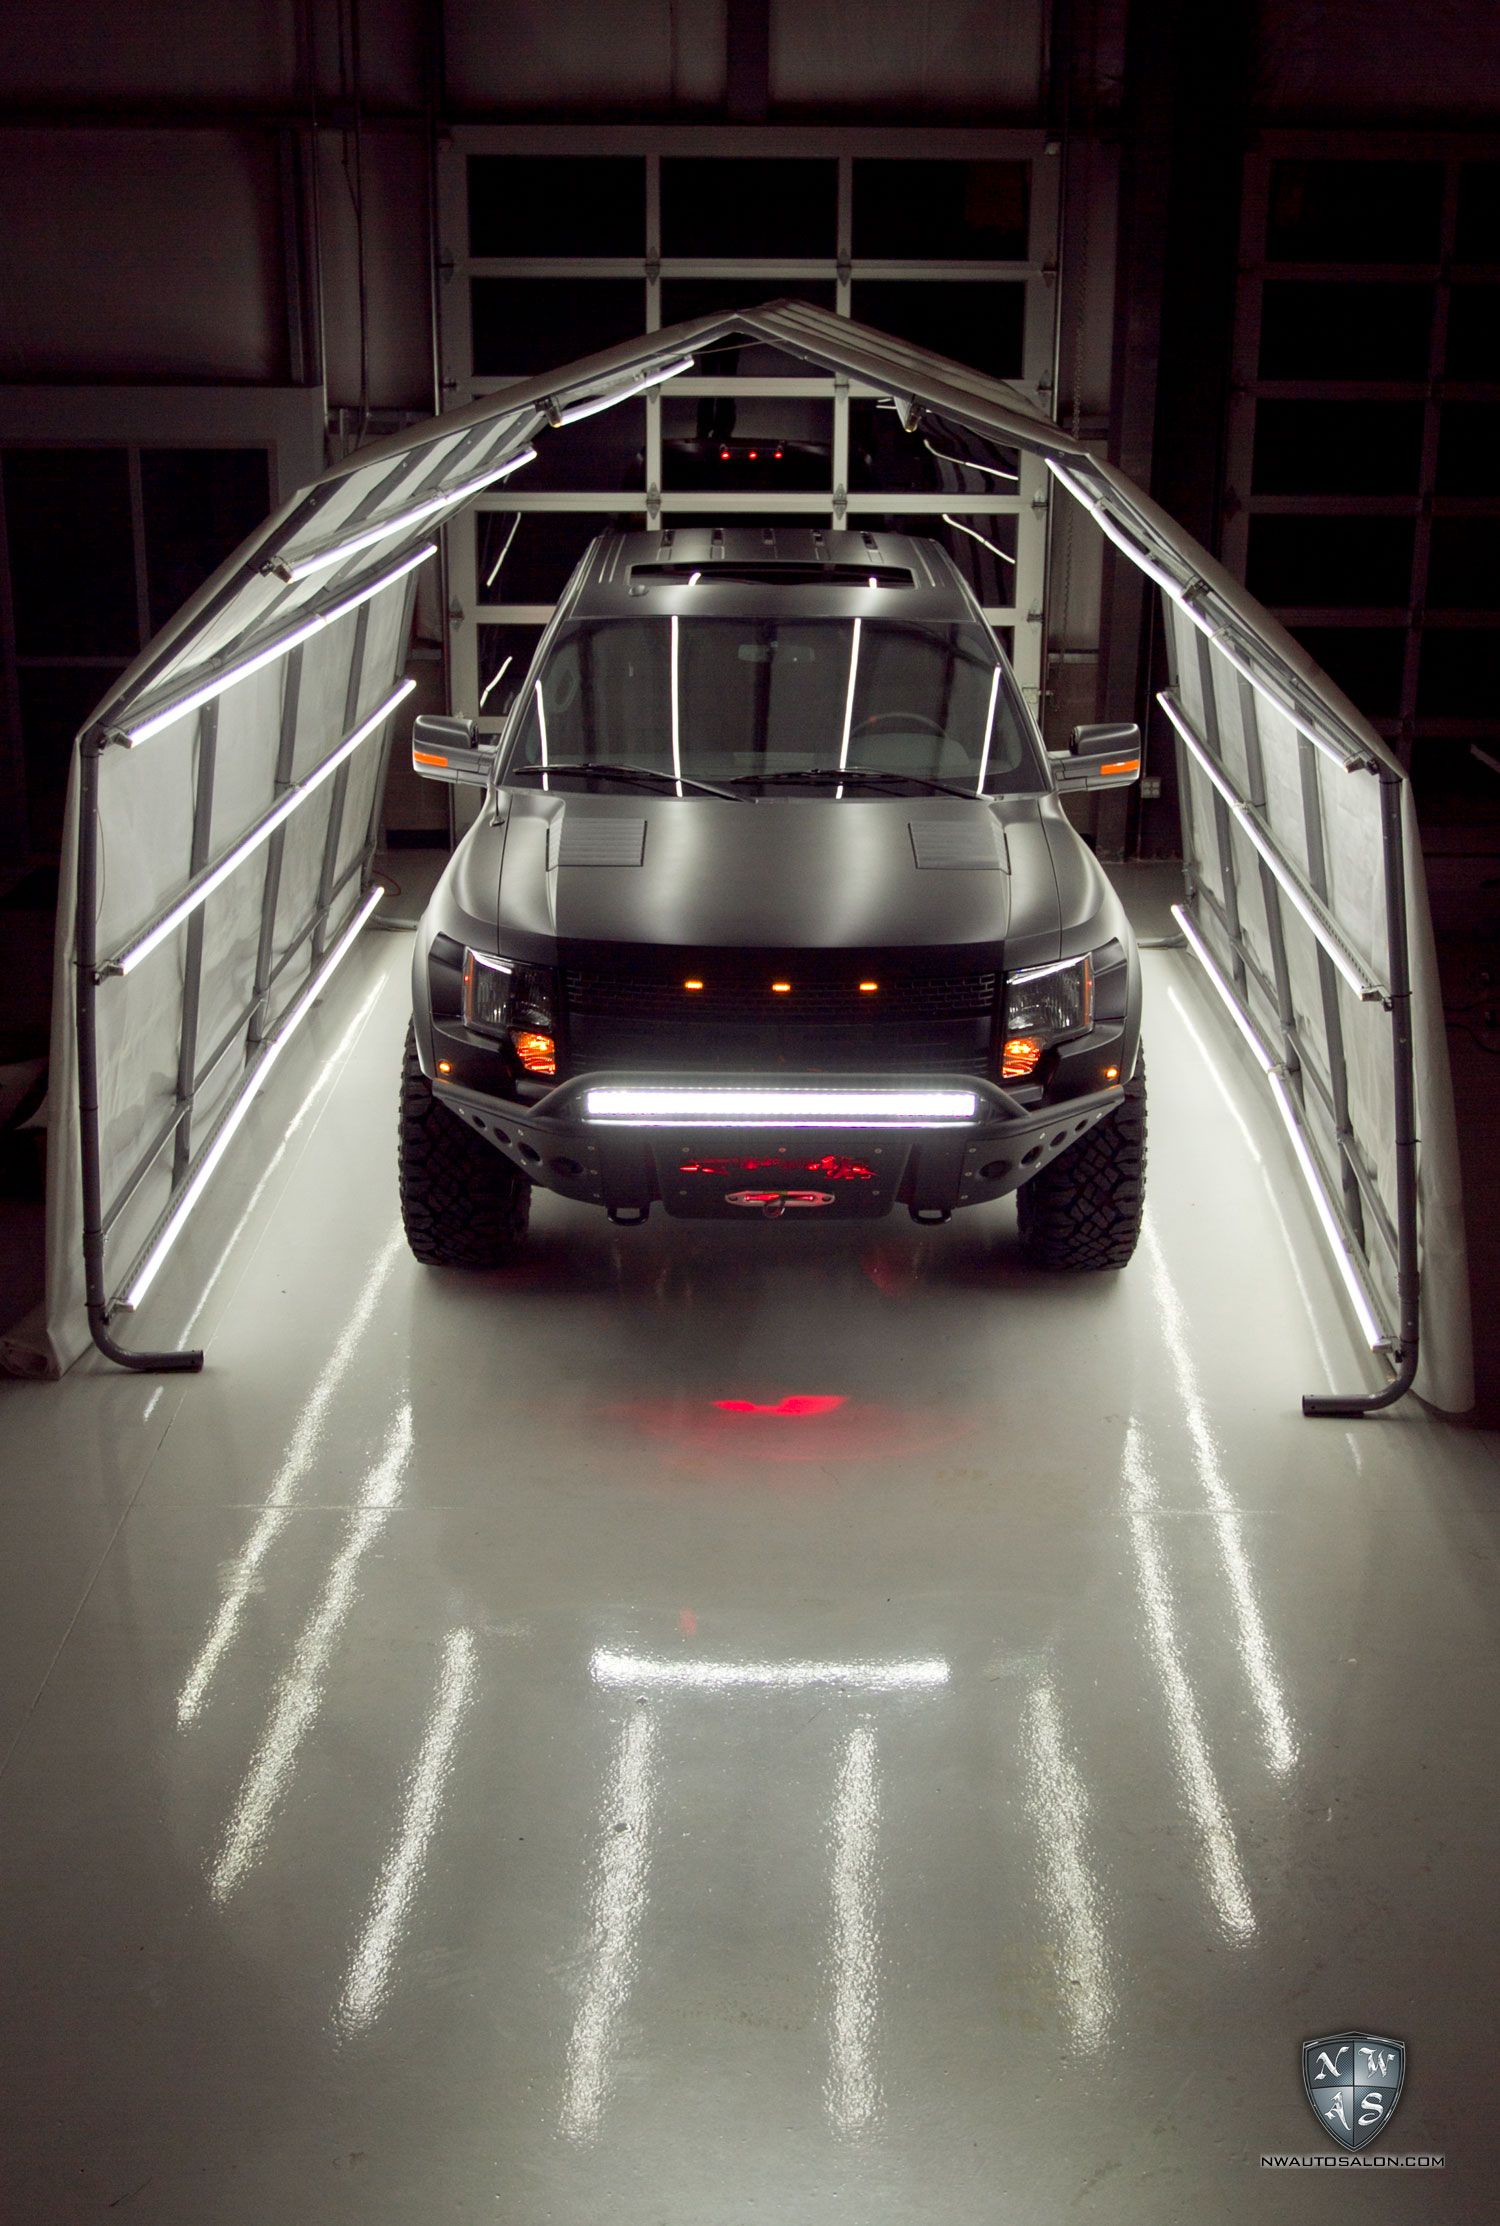 Ford Svt Raptor In The Light Tunnel At Northwest Auto